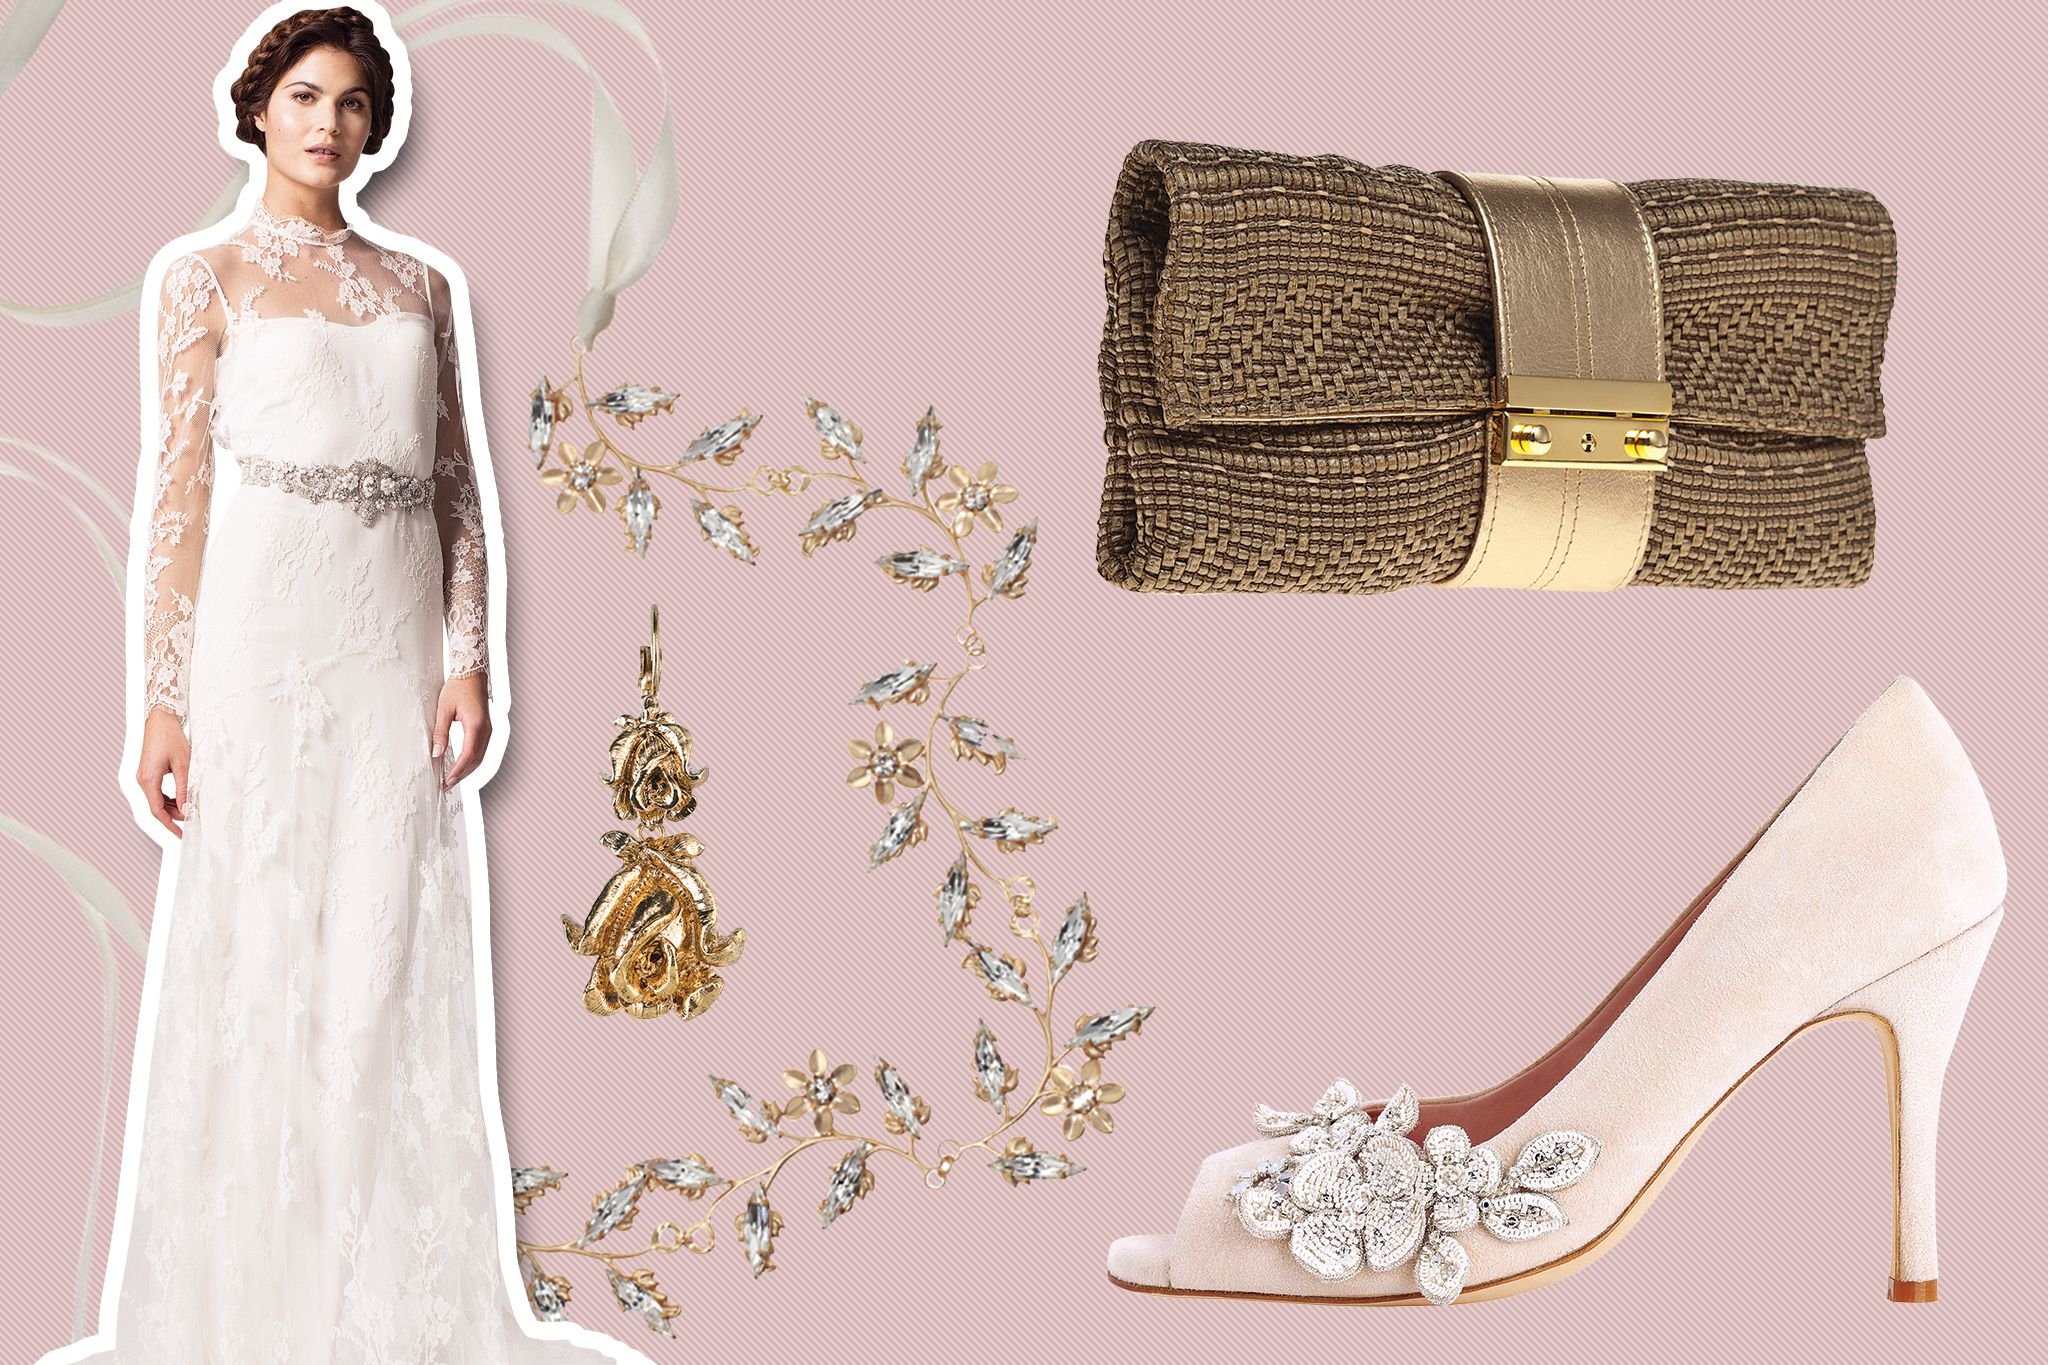 5841fd93c Wedding gown & accessories for a vineyard wedding. Find the Perfect Gown &  Accessories to Match Your Venue ...